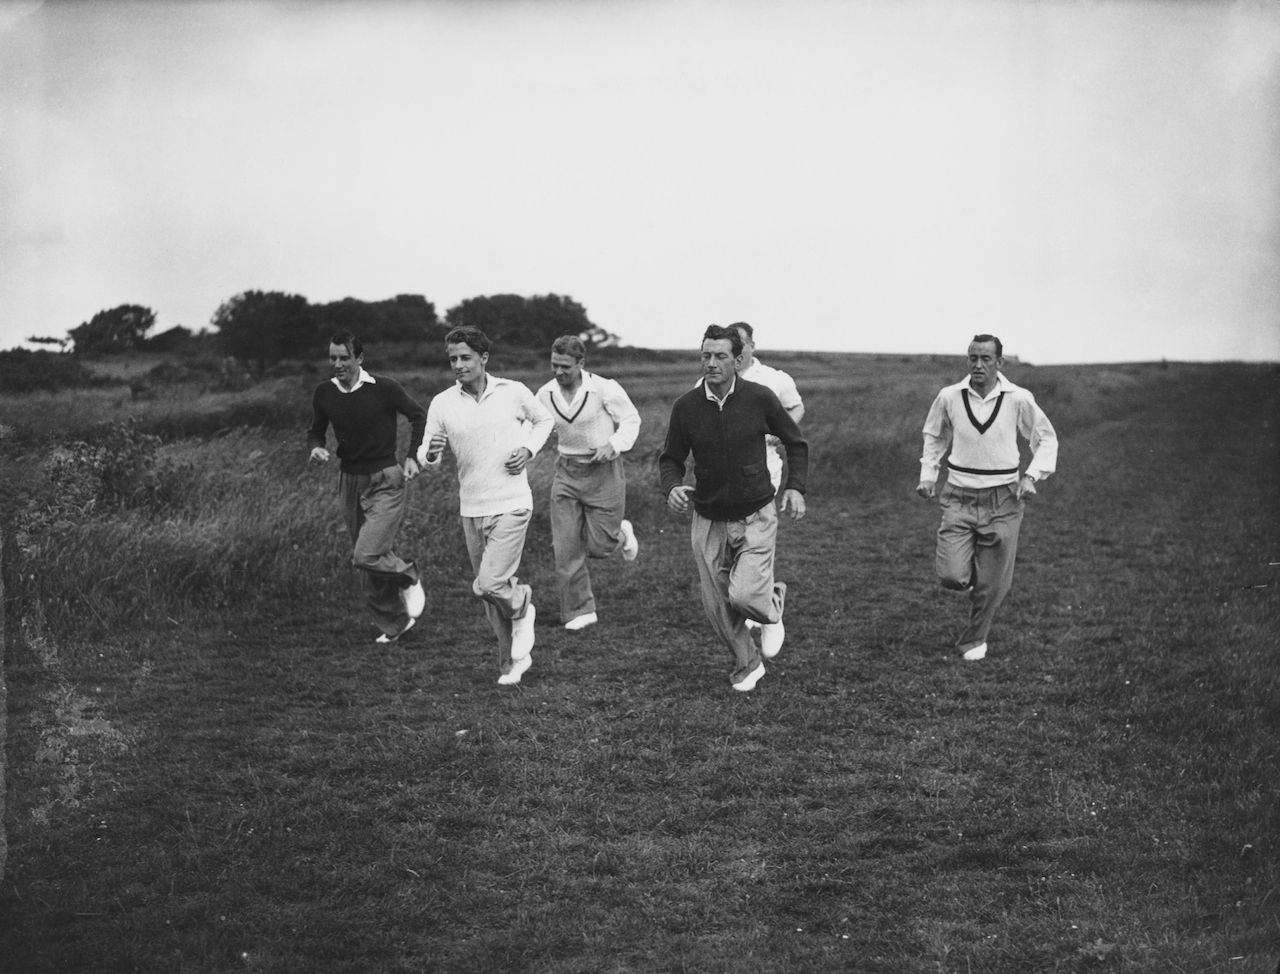 English Davis Cup tennis team members (left to right) Fred Perry (1909 - 1995), Bunny Austin (1906 - 2000), Raymond Tuckey (1910 - 2005), Dan Maskell (1908 - 1992) and Pat Hughes (1902 - 1997) training on Beachy Head, Sussex, 14th July 1936. They are working with Arsenal football club's trainer, Tom Whittaker. (Photo by Topical Press Agency/Hulton Archive/Getty Images)